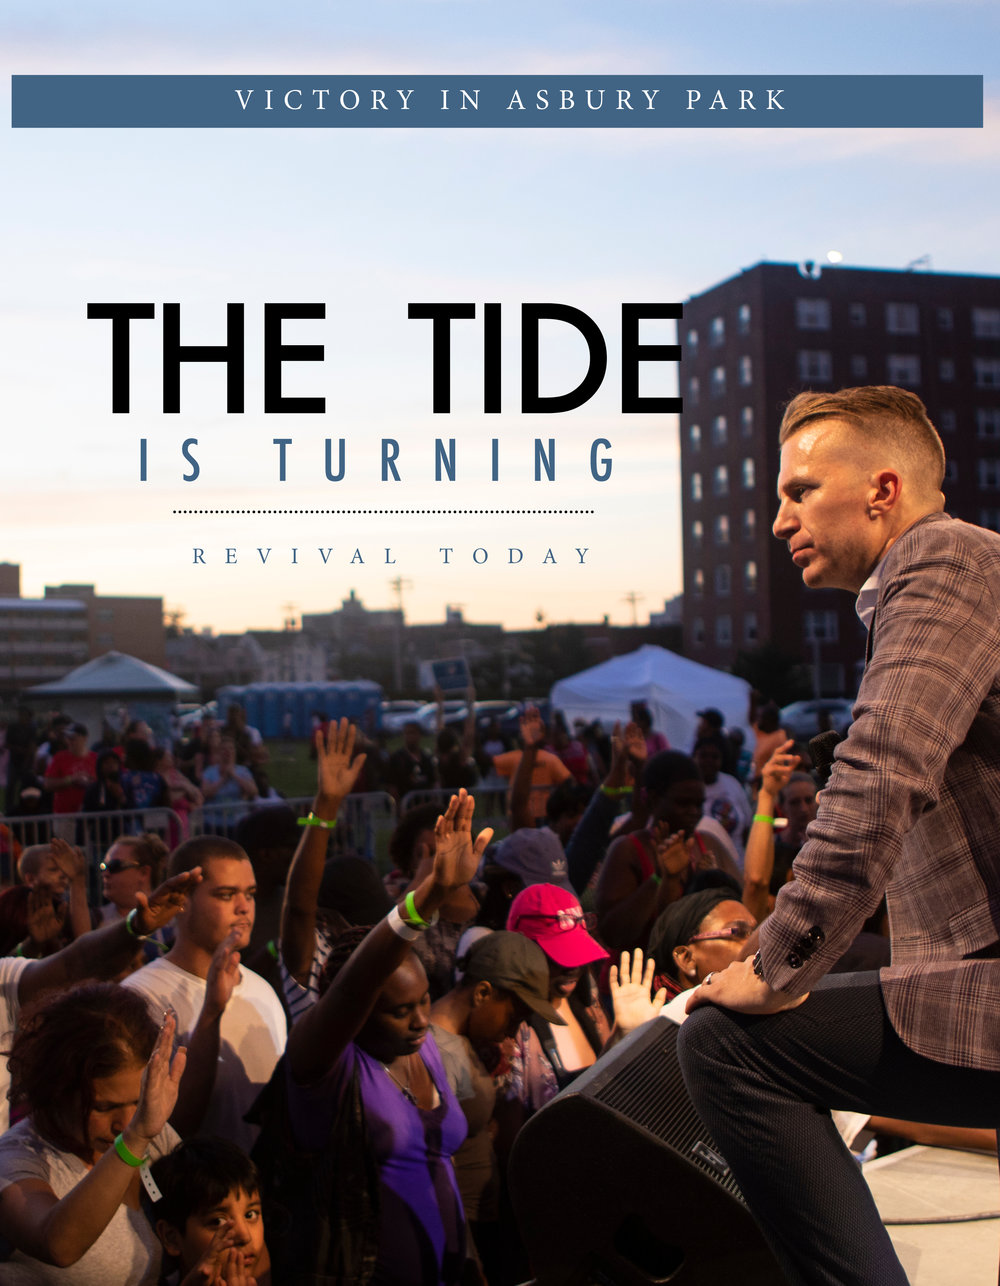 Jonathan Shuttlesworth, Turning the Tide Revival Today